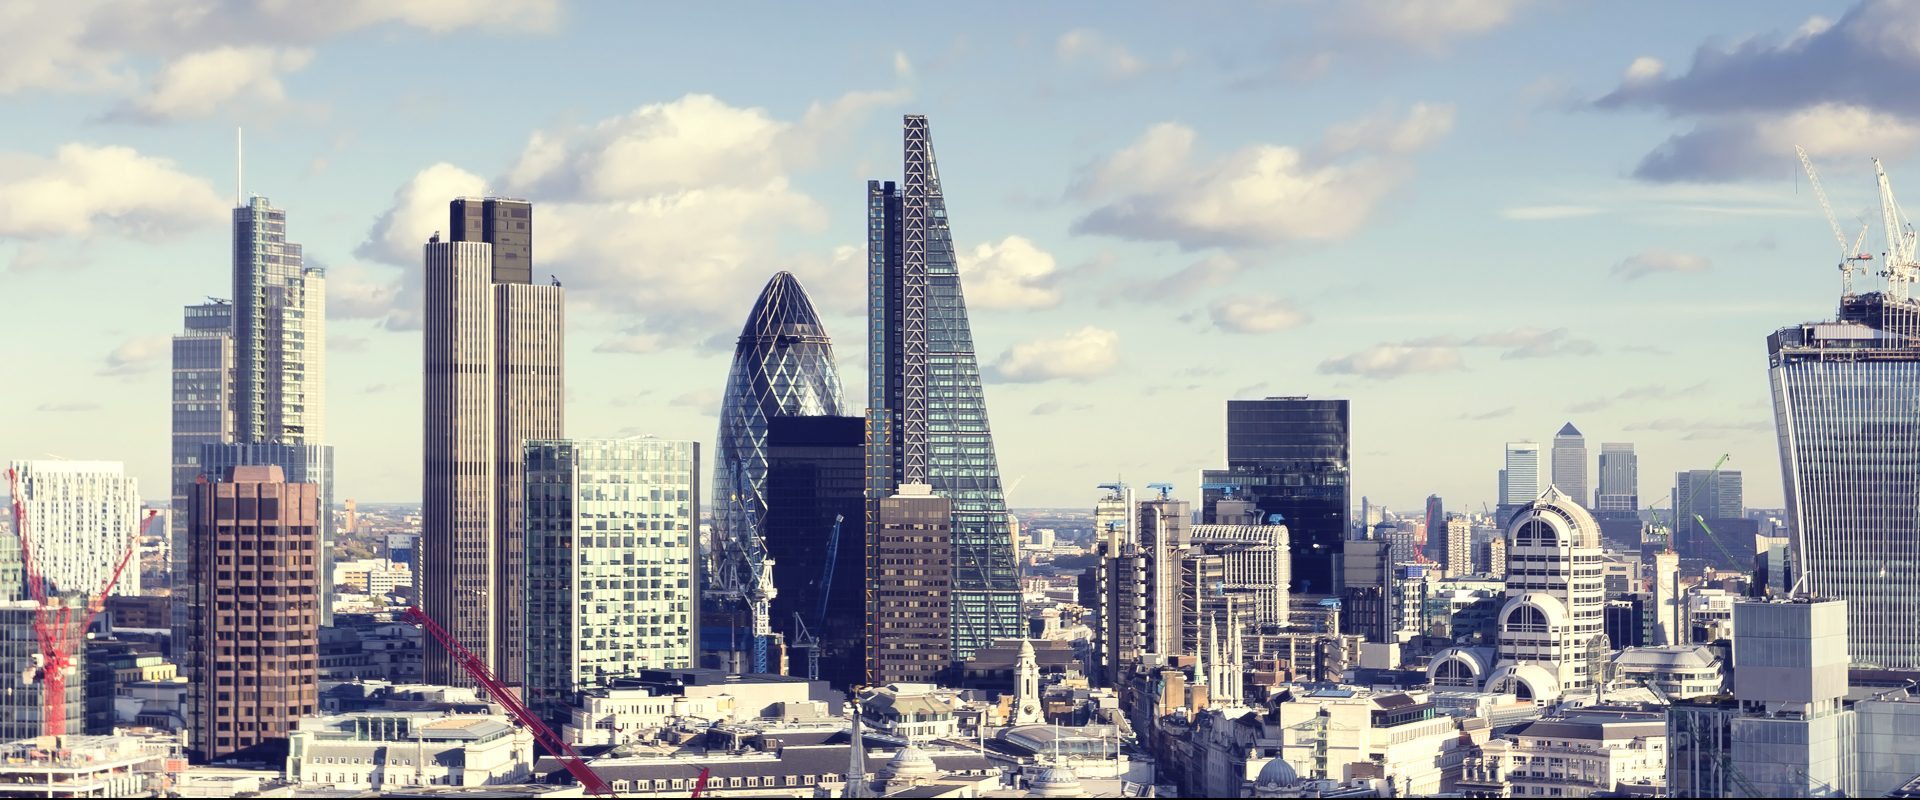 London skyline with the landmark corporate buildings of the City of London and Canary Wharf.